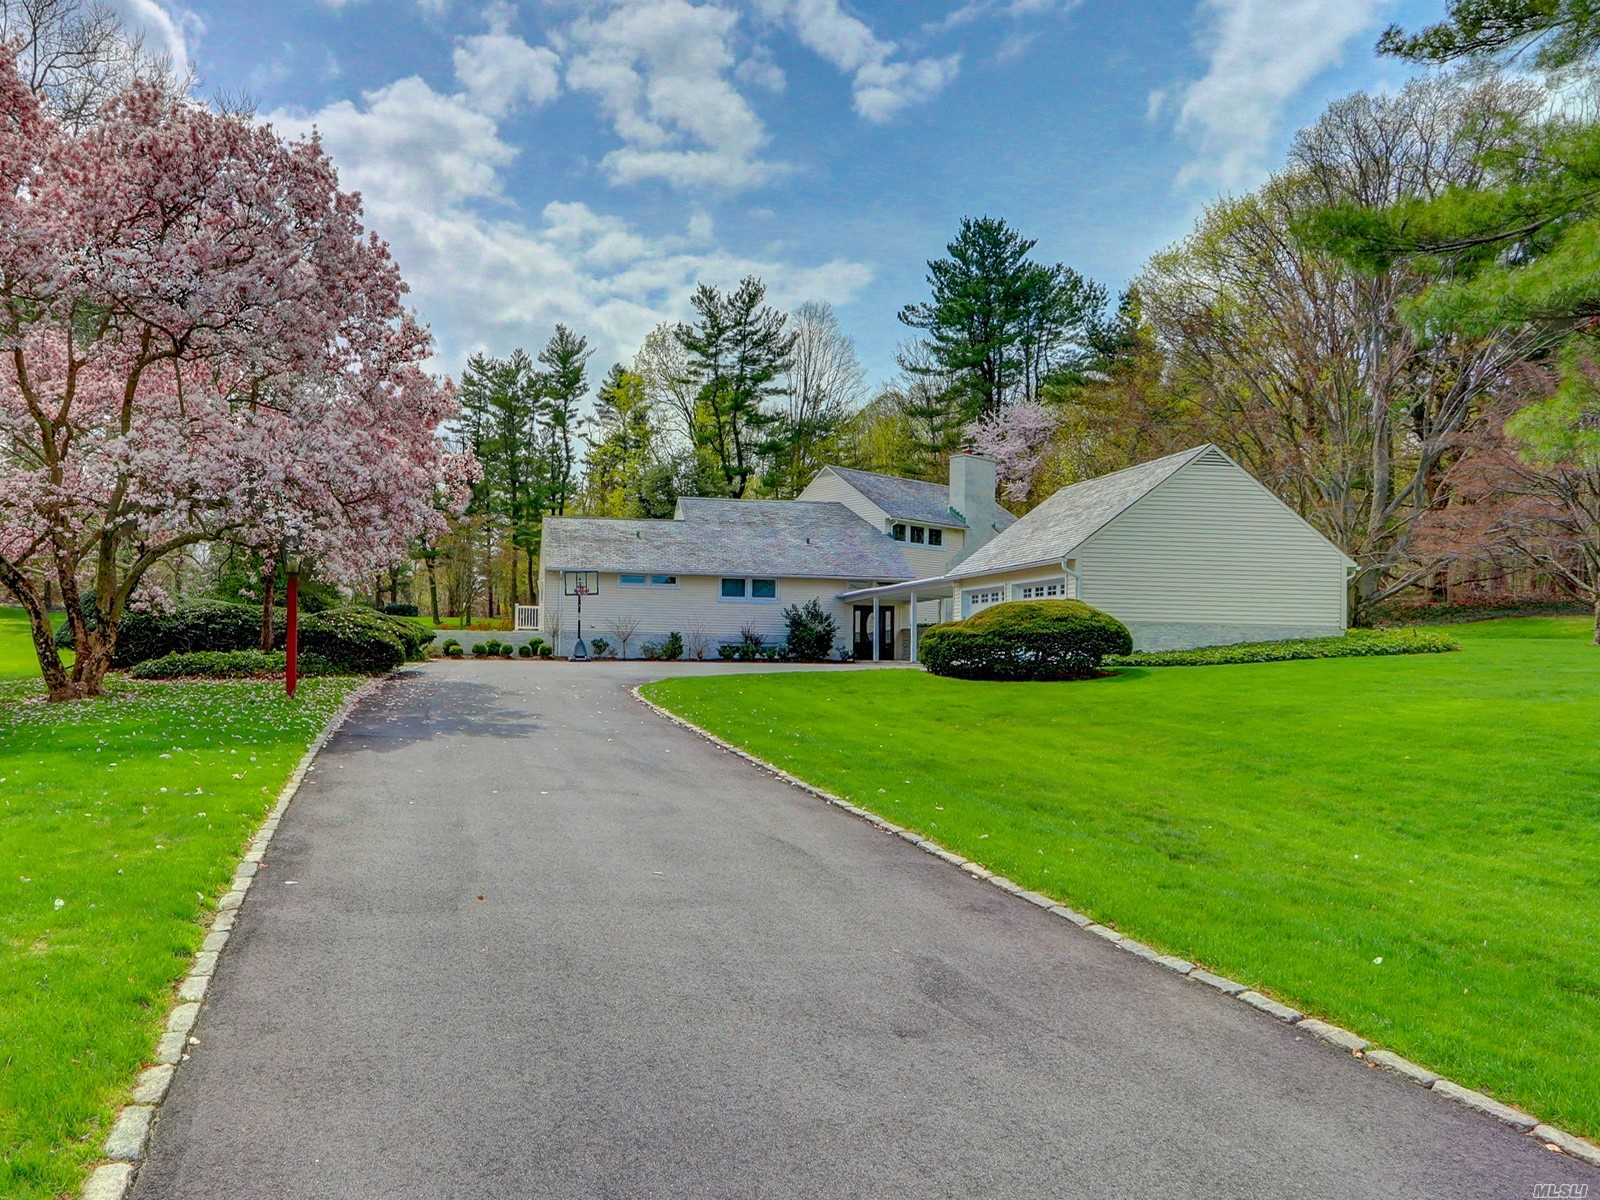 Stunning Newly Furnished and Decorated by Superb Architectural Designer, this beauty is the epitomy of peaceful living, boasting unique details, from the light and colorful rooms to the dramatic fixtures and eyecatching decor. A Must See if you are looking for a Newly Decorated and Furnished Home on 6.55 acres of Rolling Lawns, Sparkling New In-Ground Gunite Pool and the privacy that this all affords you. Also offered Unfurnished if desired.